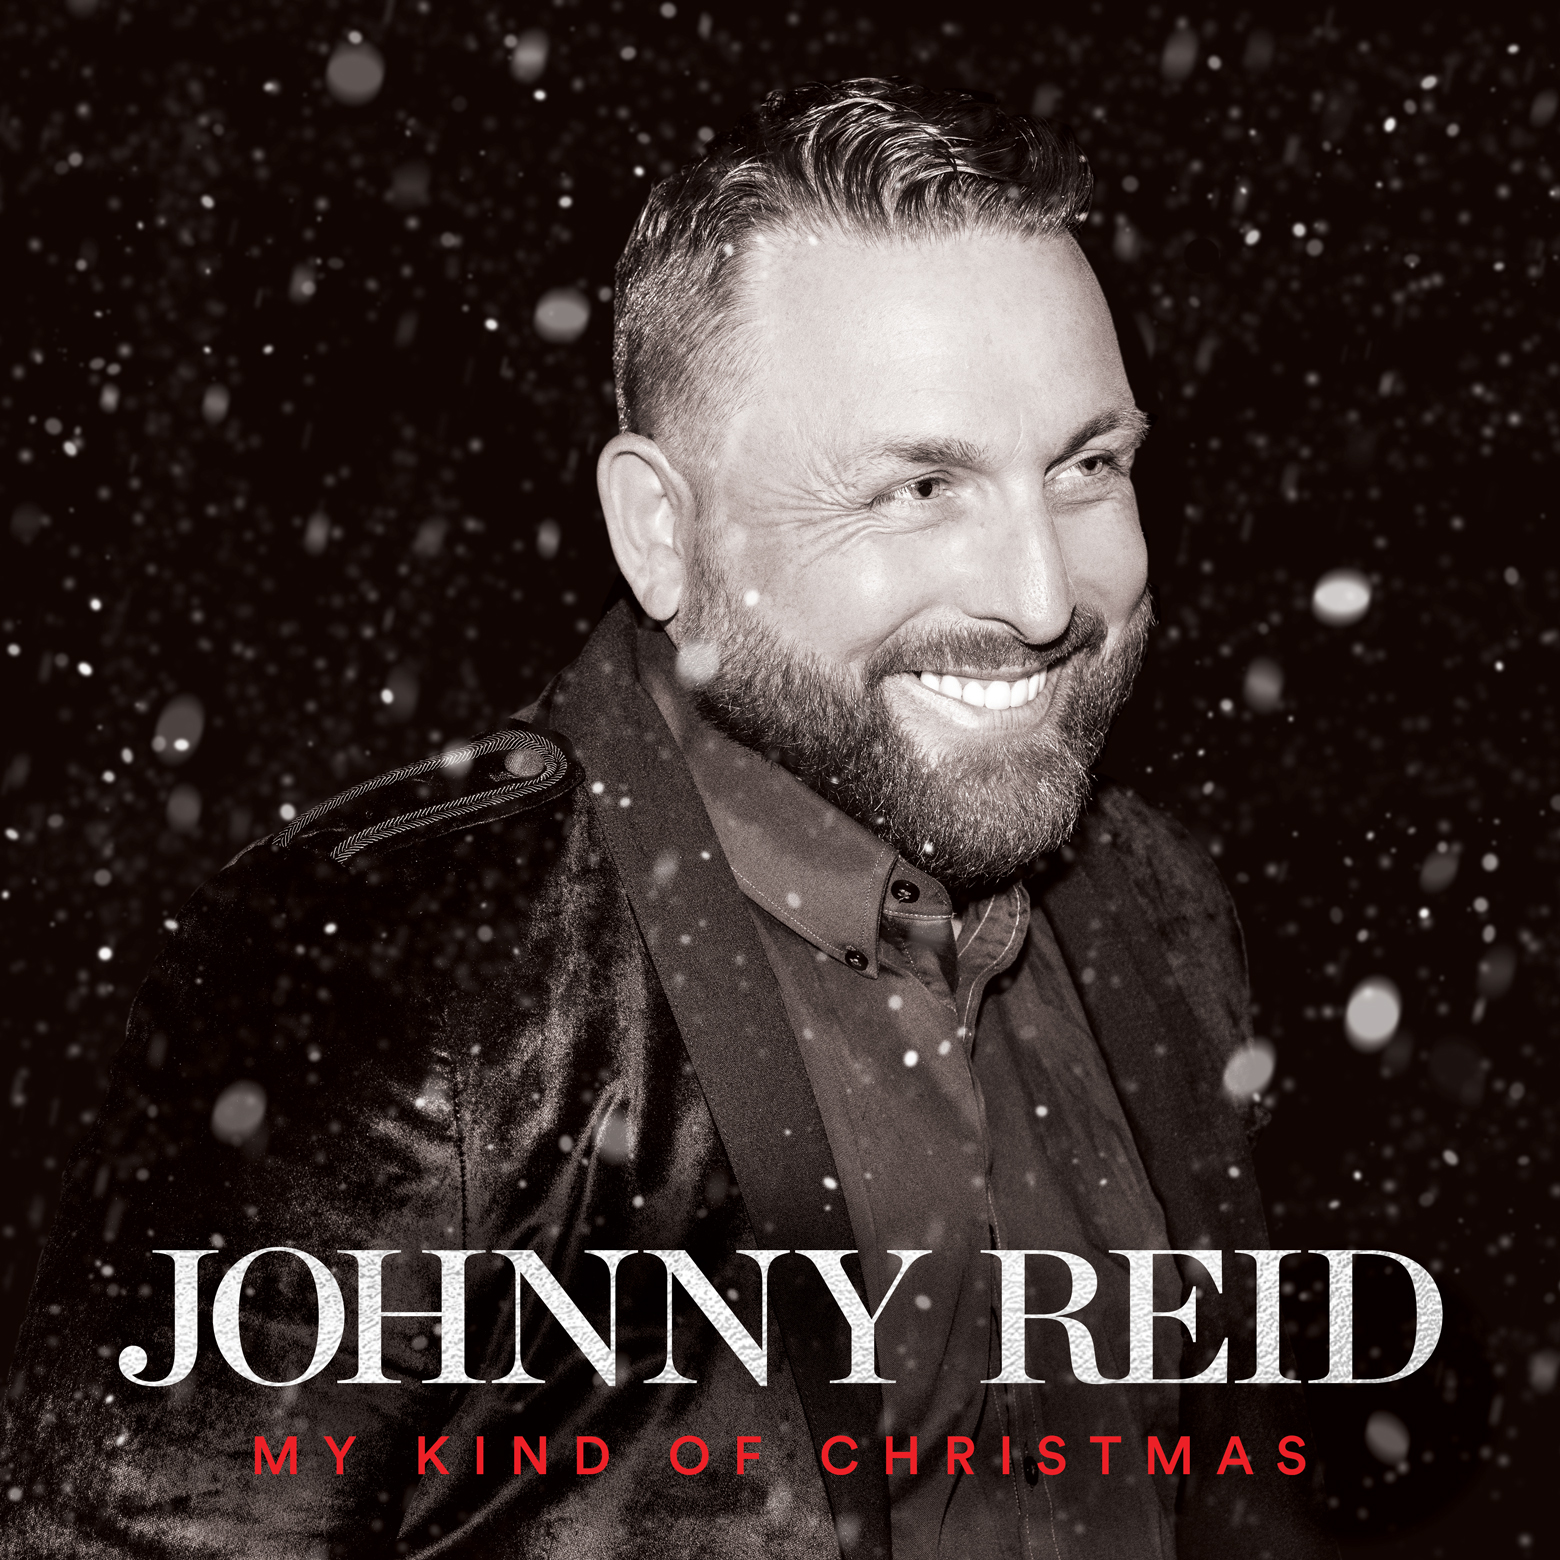 Johnny Reid Announces My Kind of Christmas Single, EP and Tour